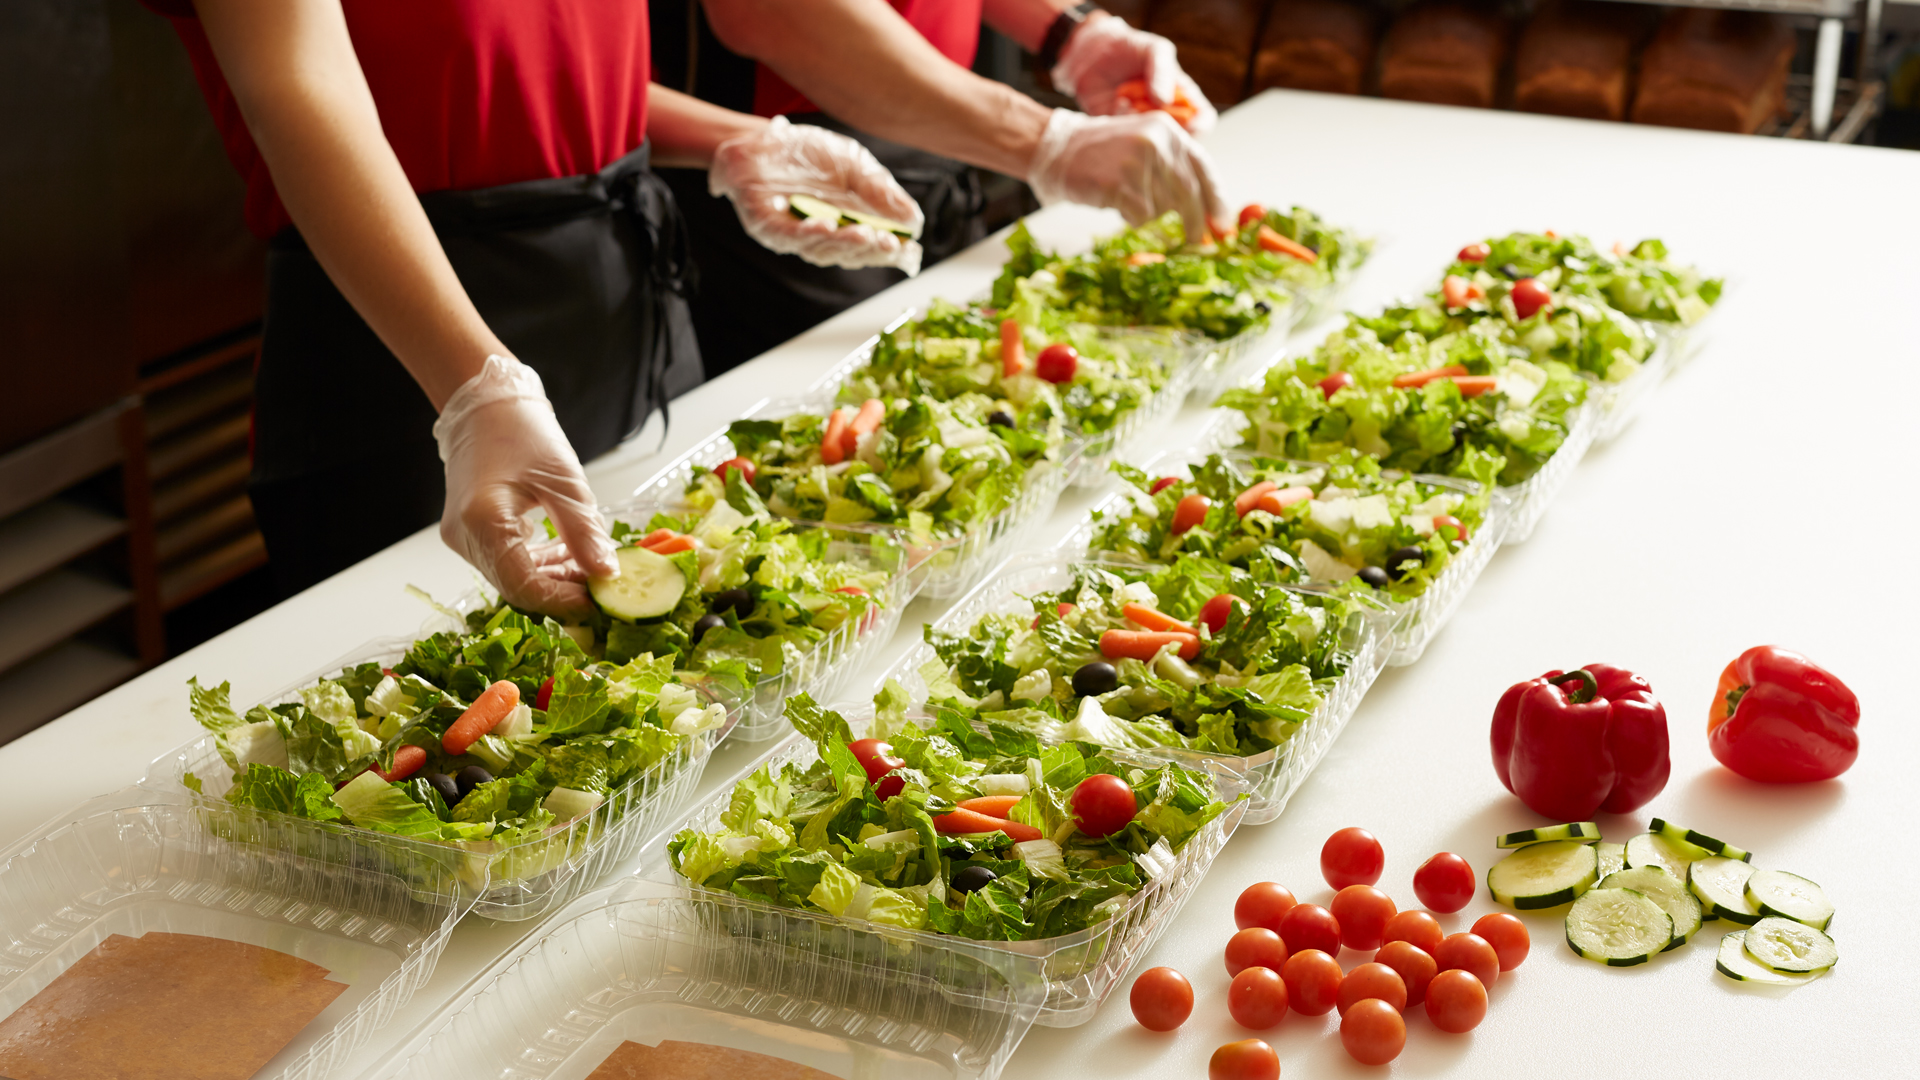 Apple Spice Catered Salad Preparation